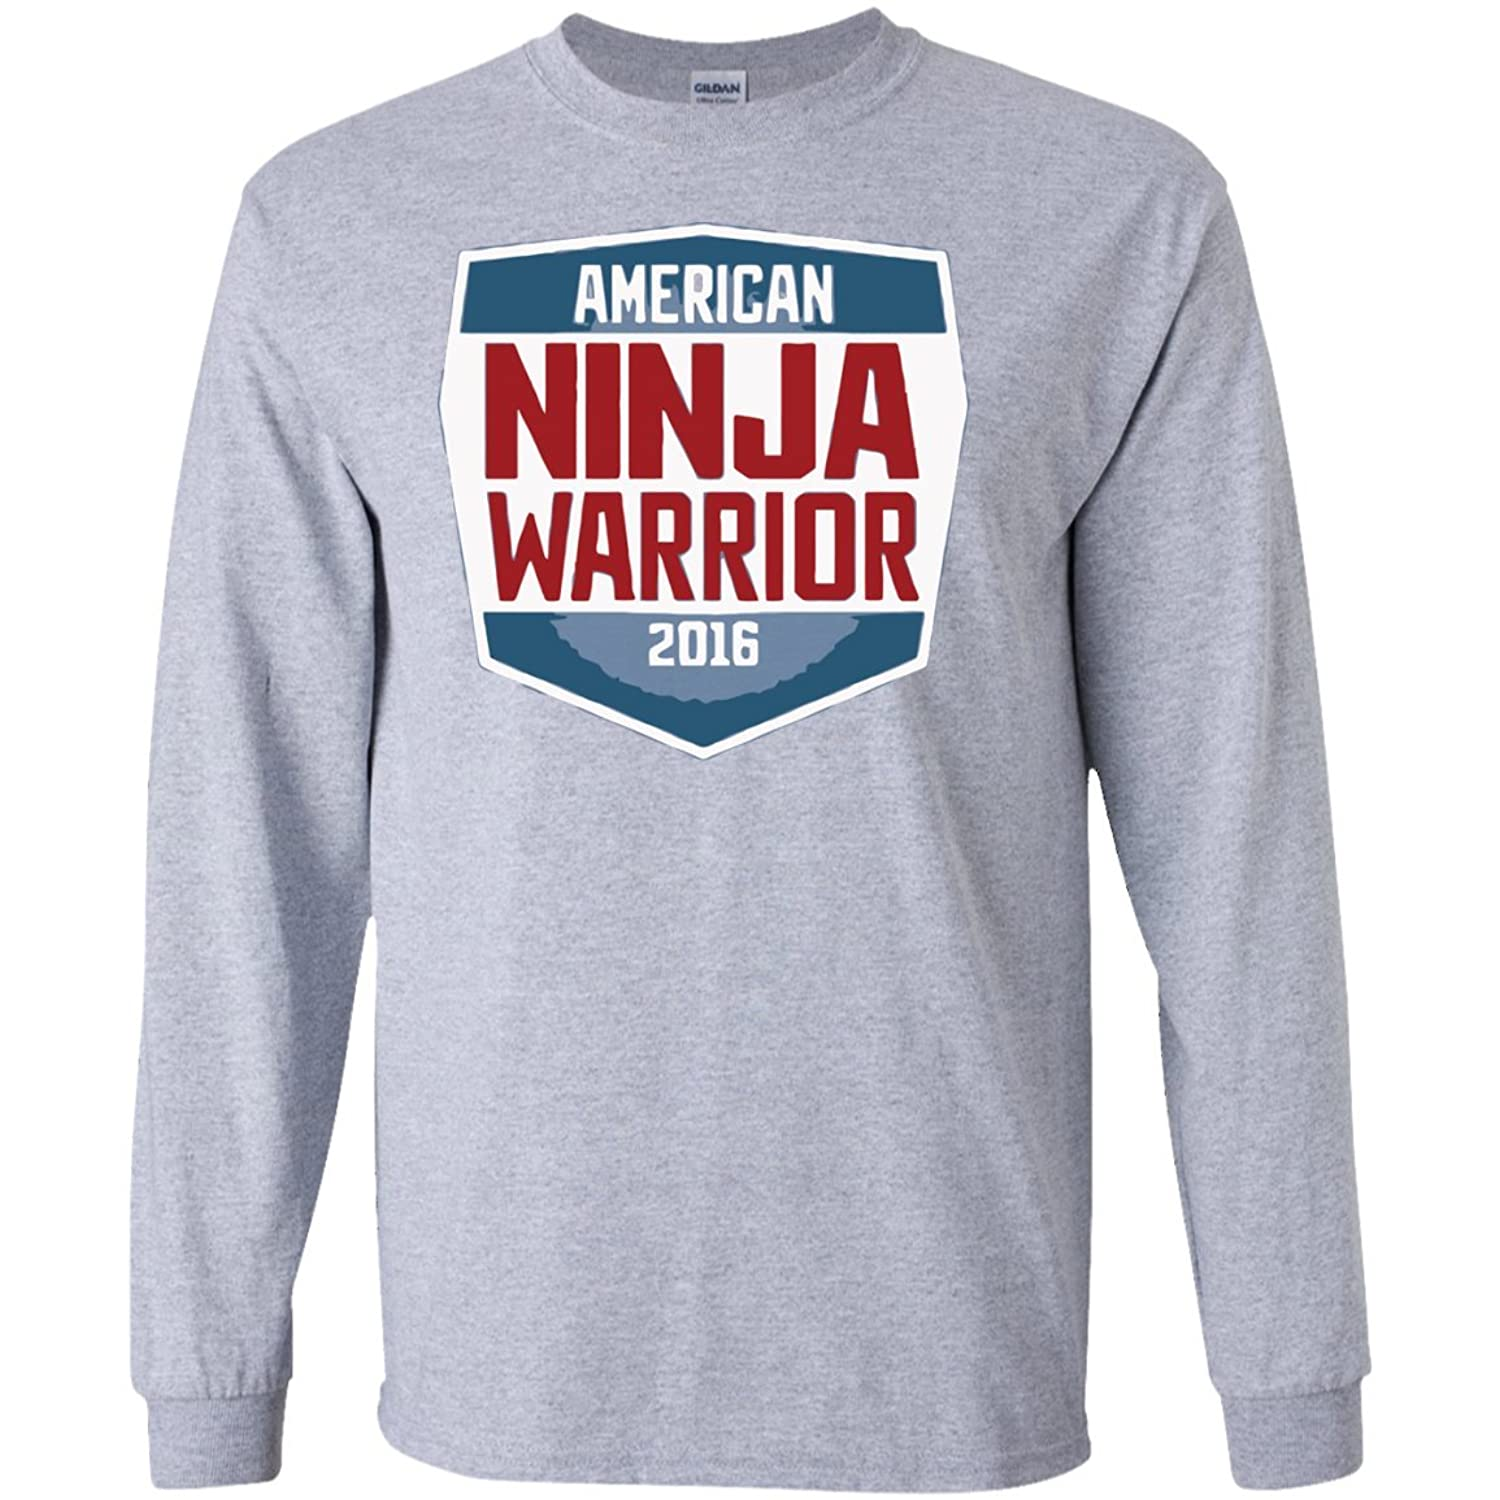 American Ninja Warrior 2016 Long Sleeves Tshirt